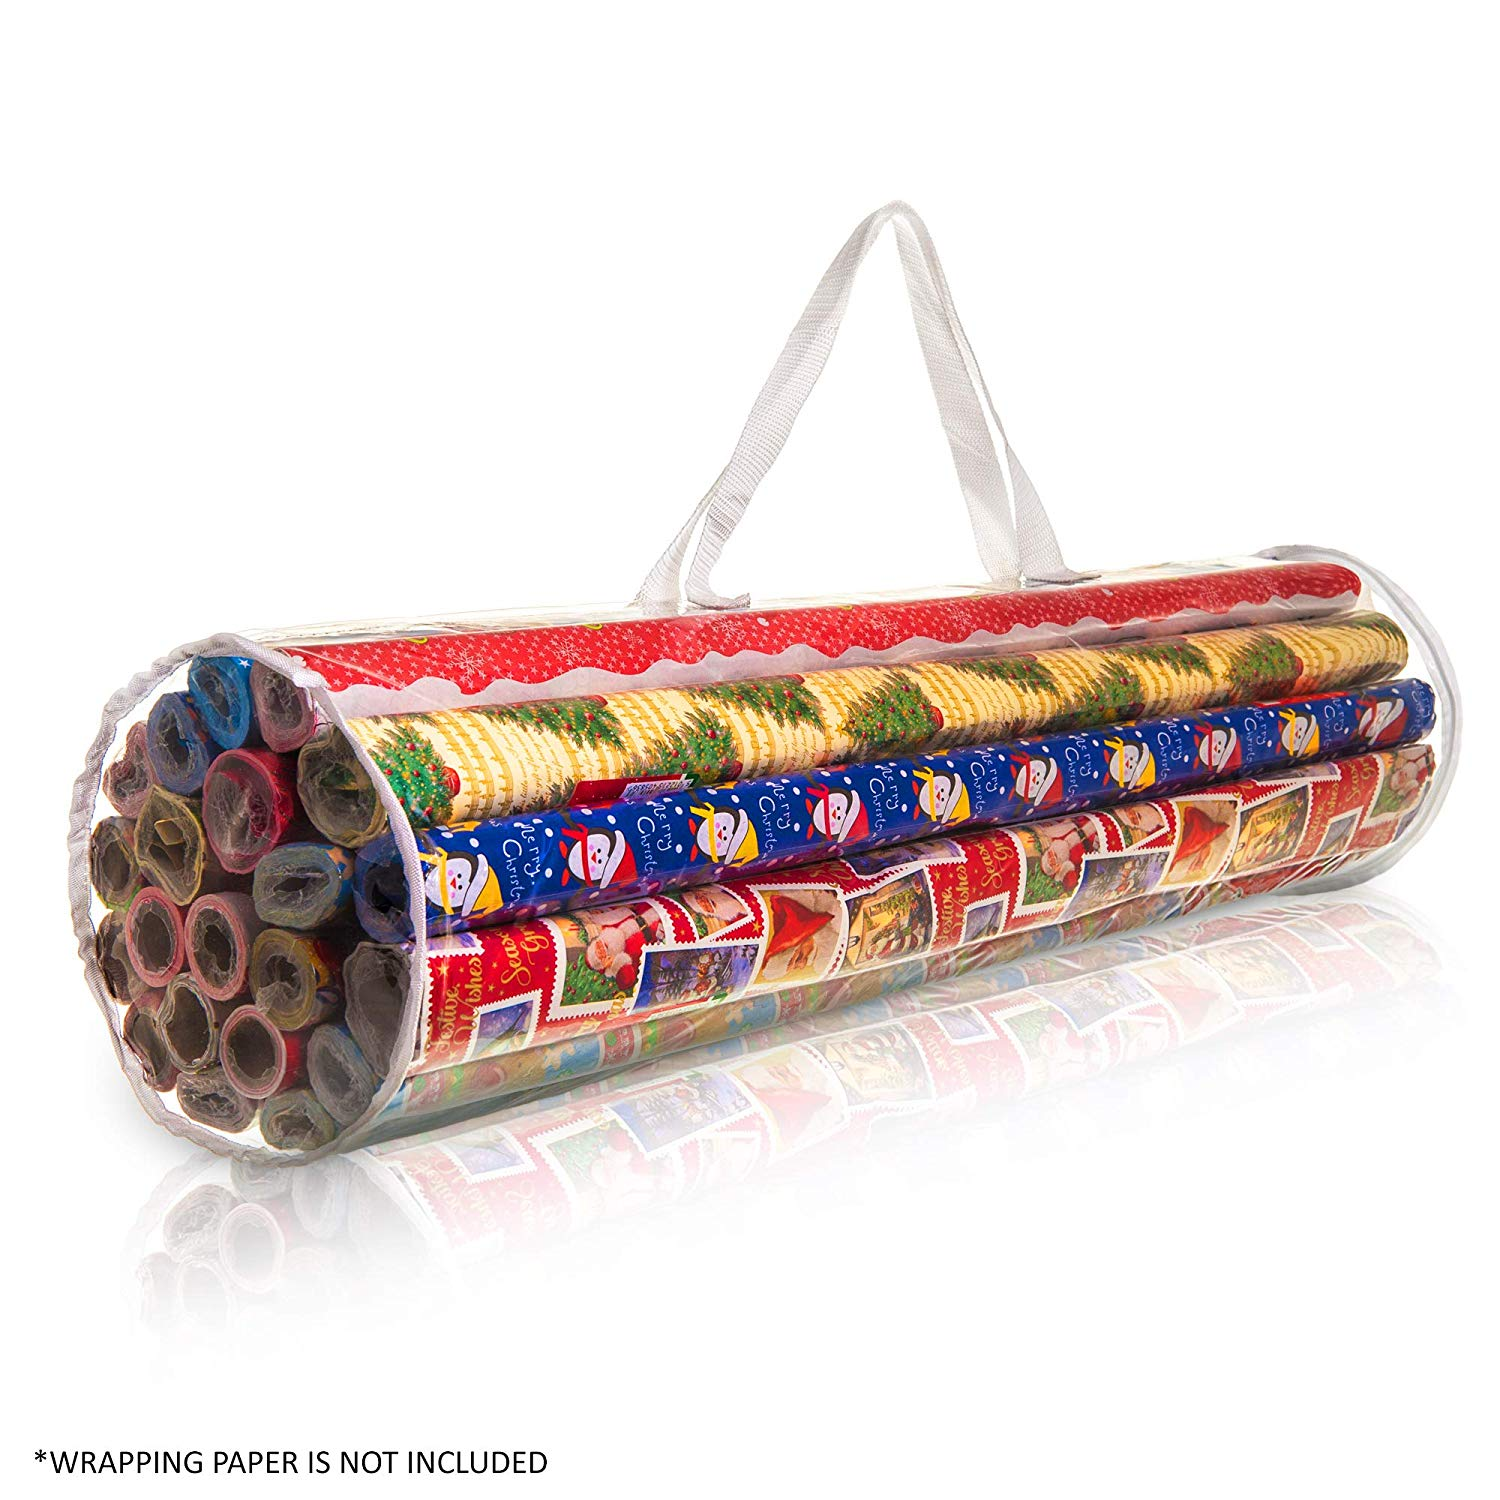 Wrapping holder 1.jpg